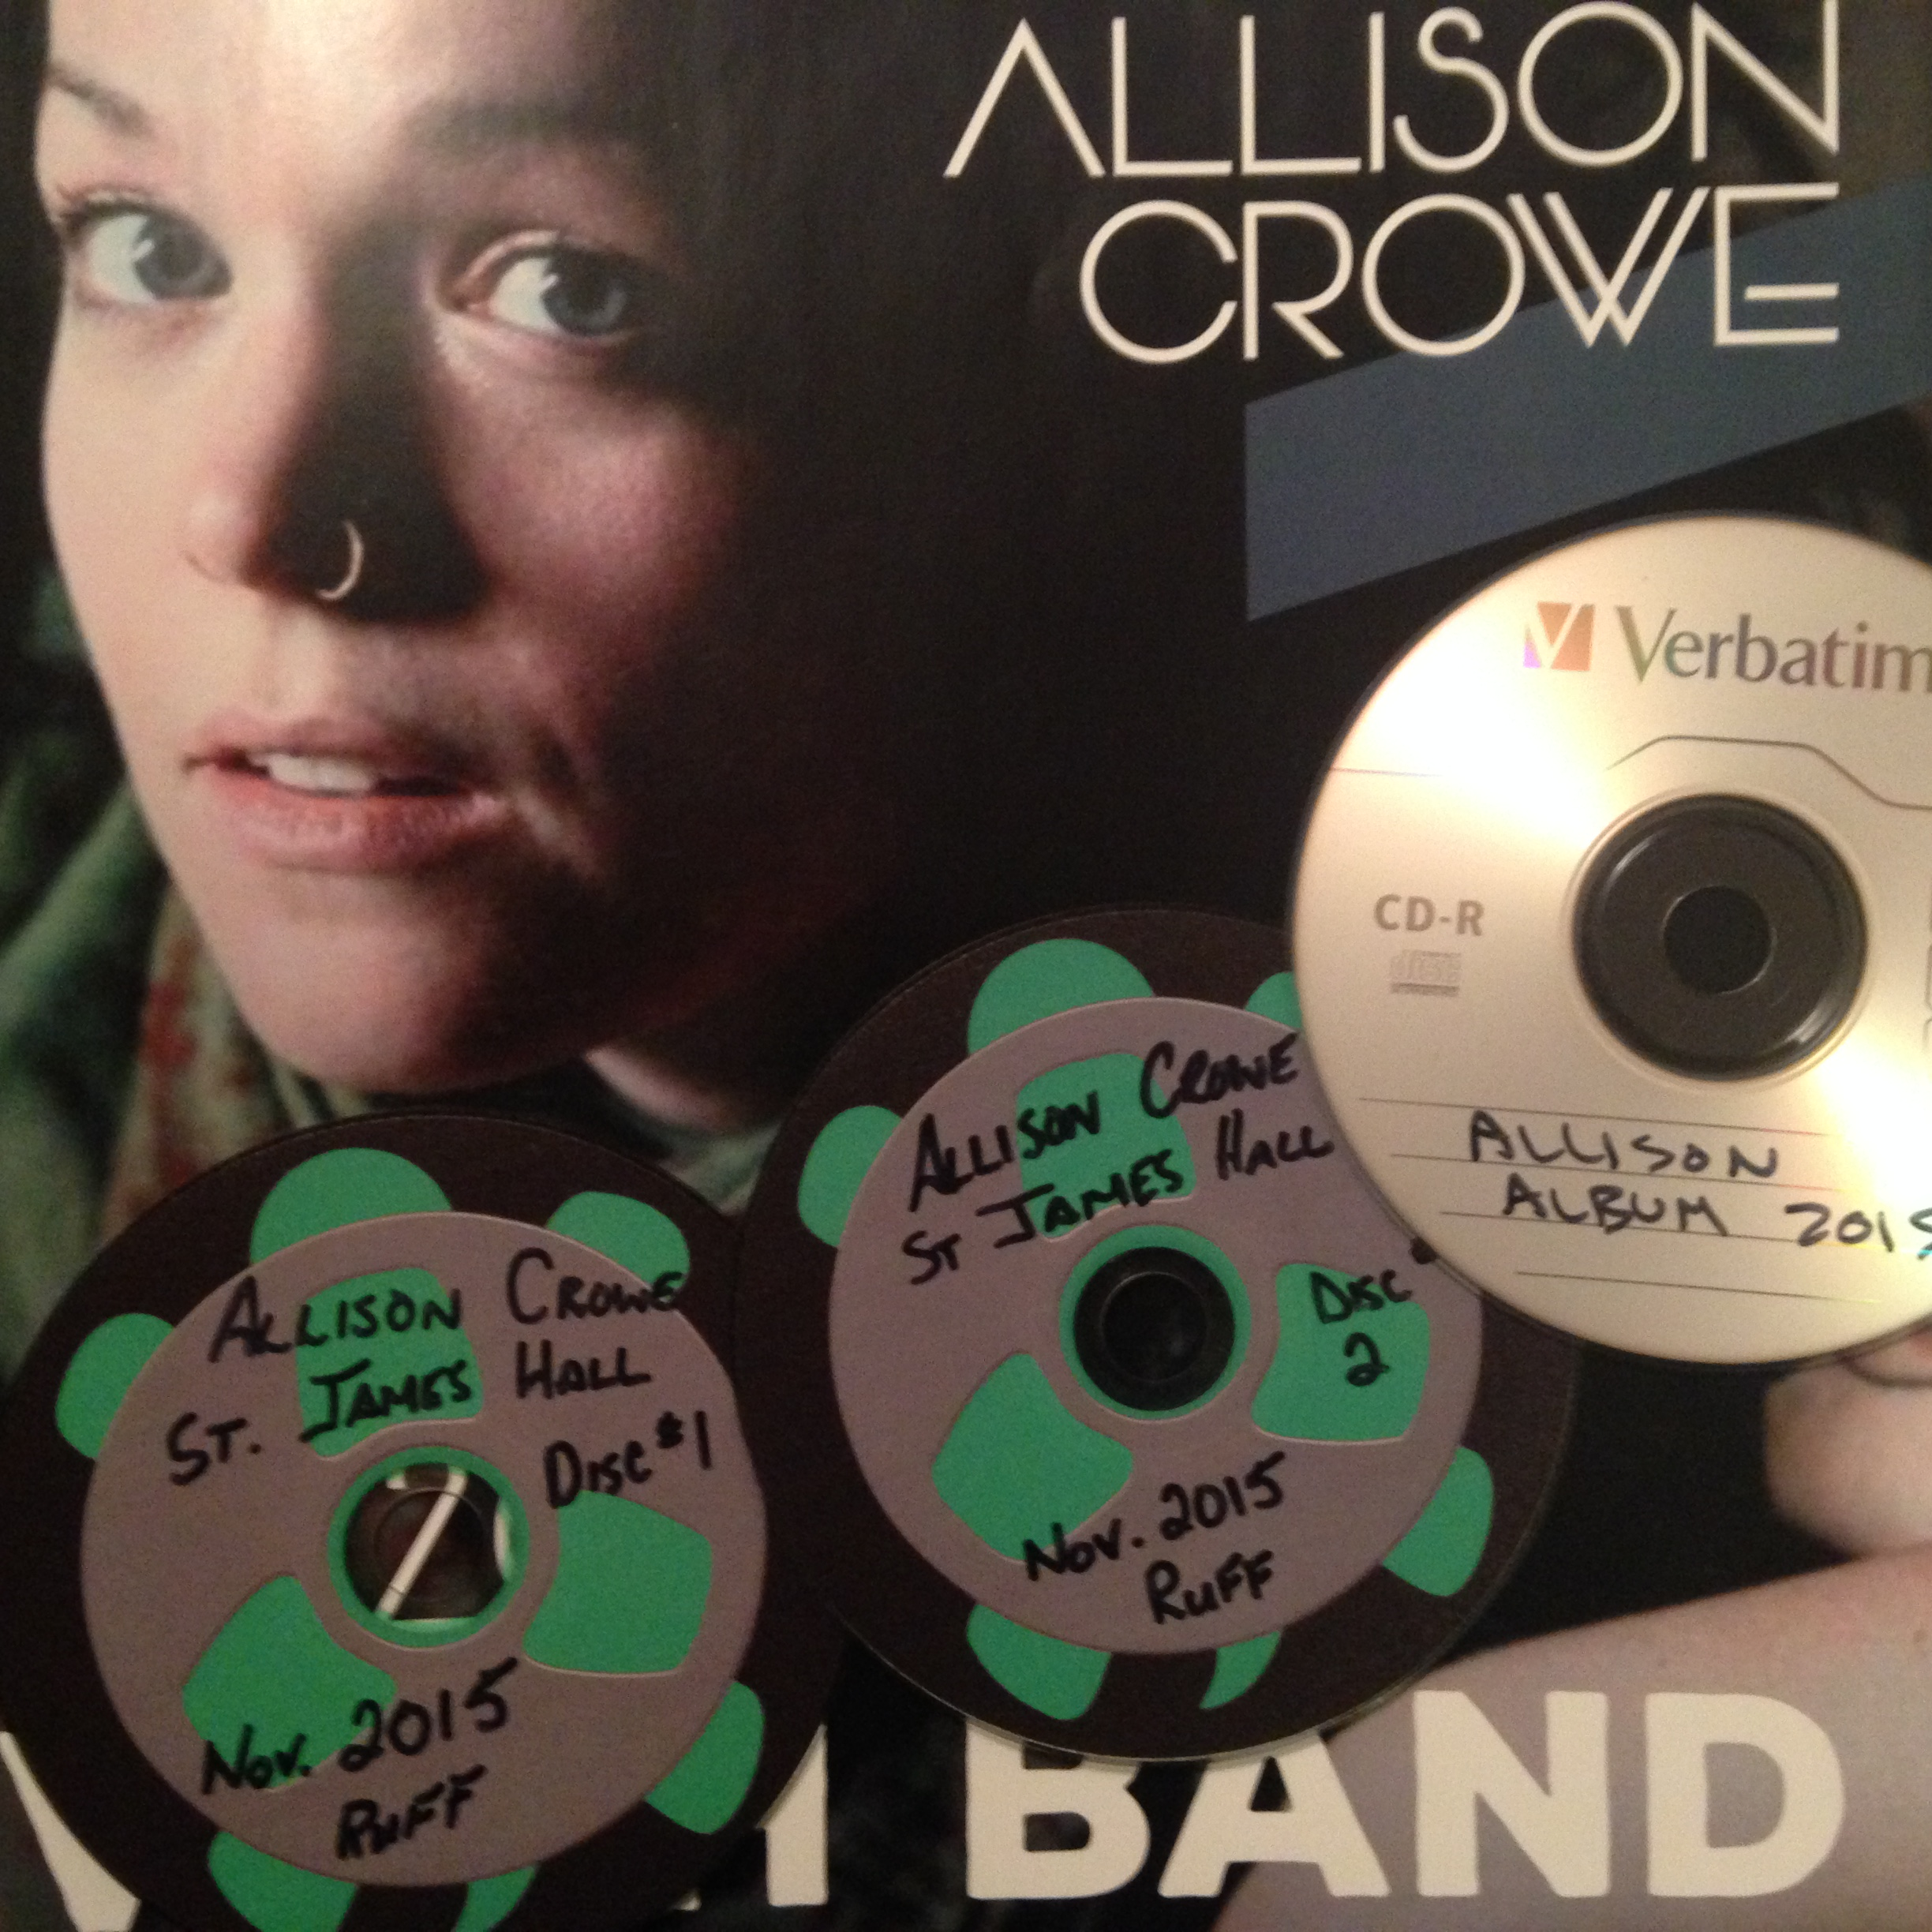 Introducing / Heirs & Grievances - Allison Crowe & Band - album - ruff mix